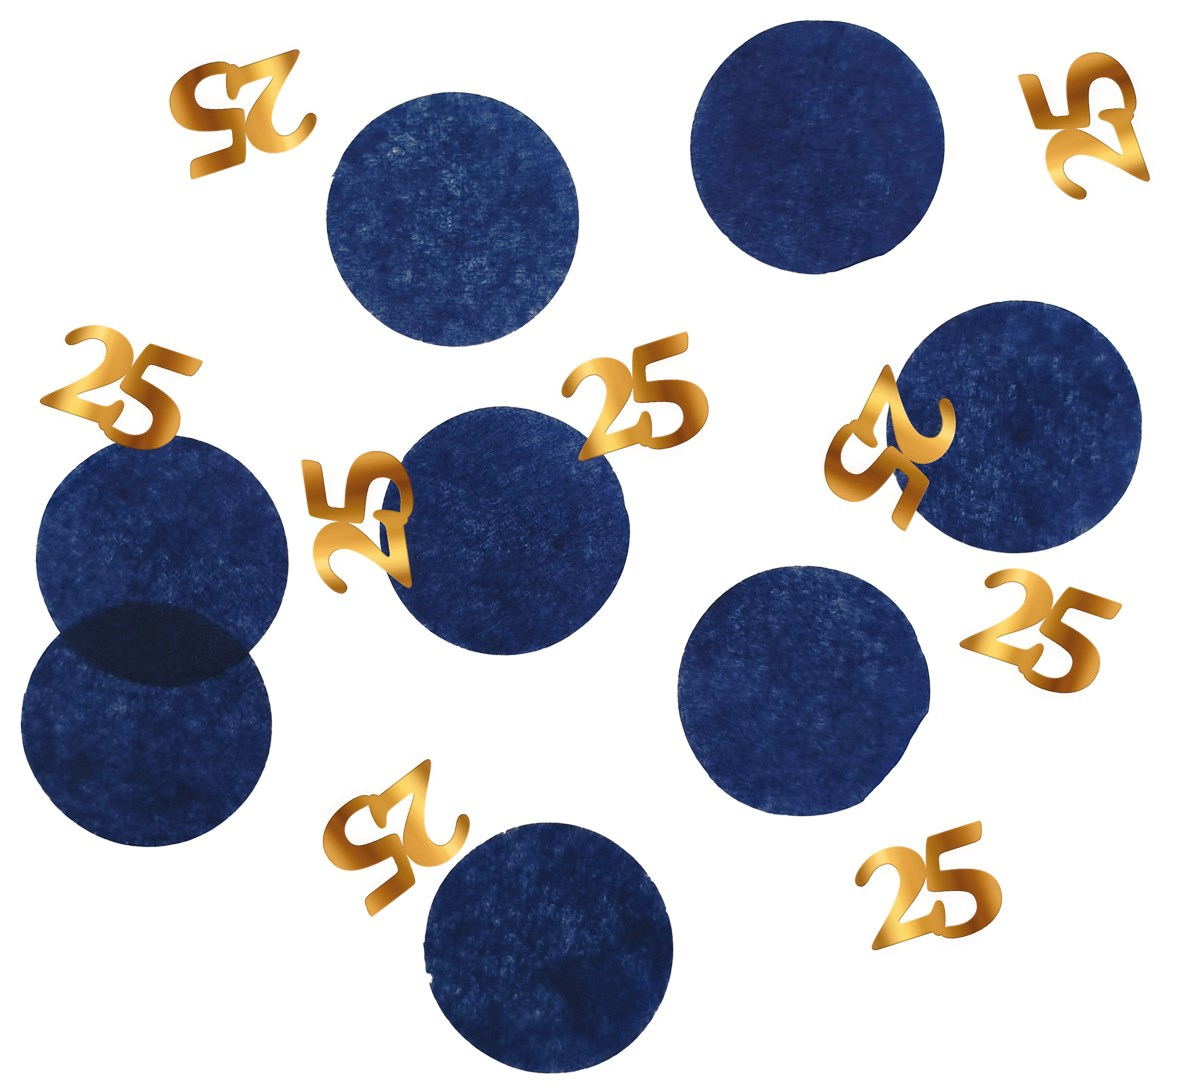 Tabledeco/confetti 25 Year Elegant True Blue 25gr 1